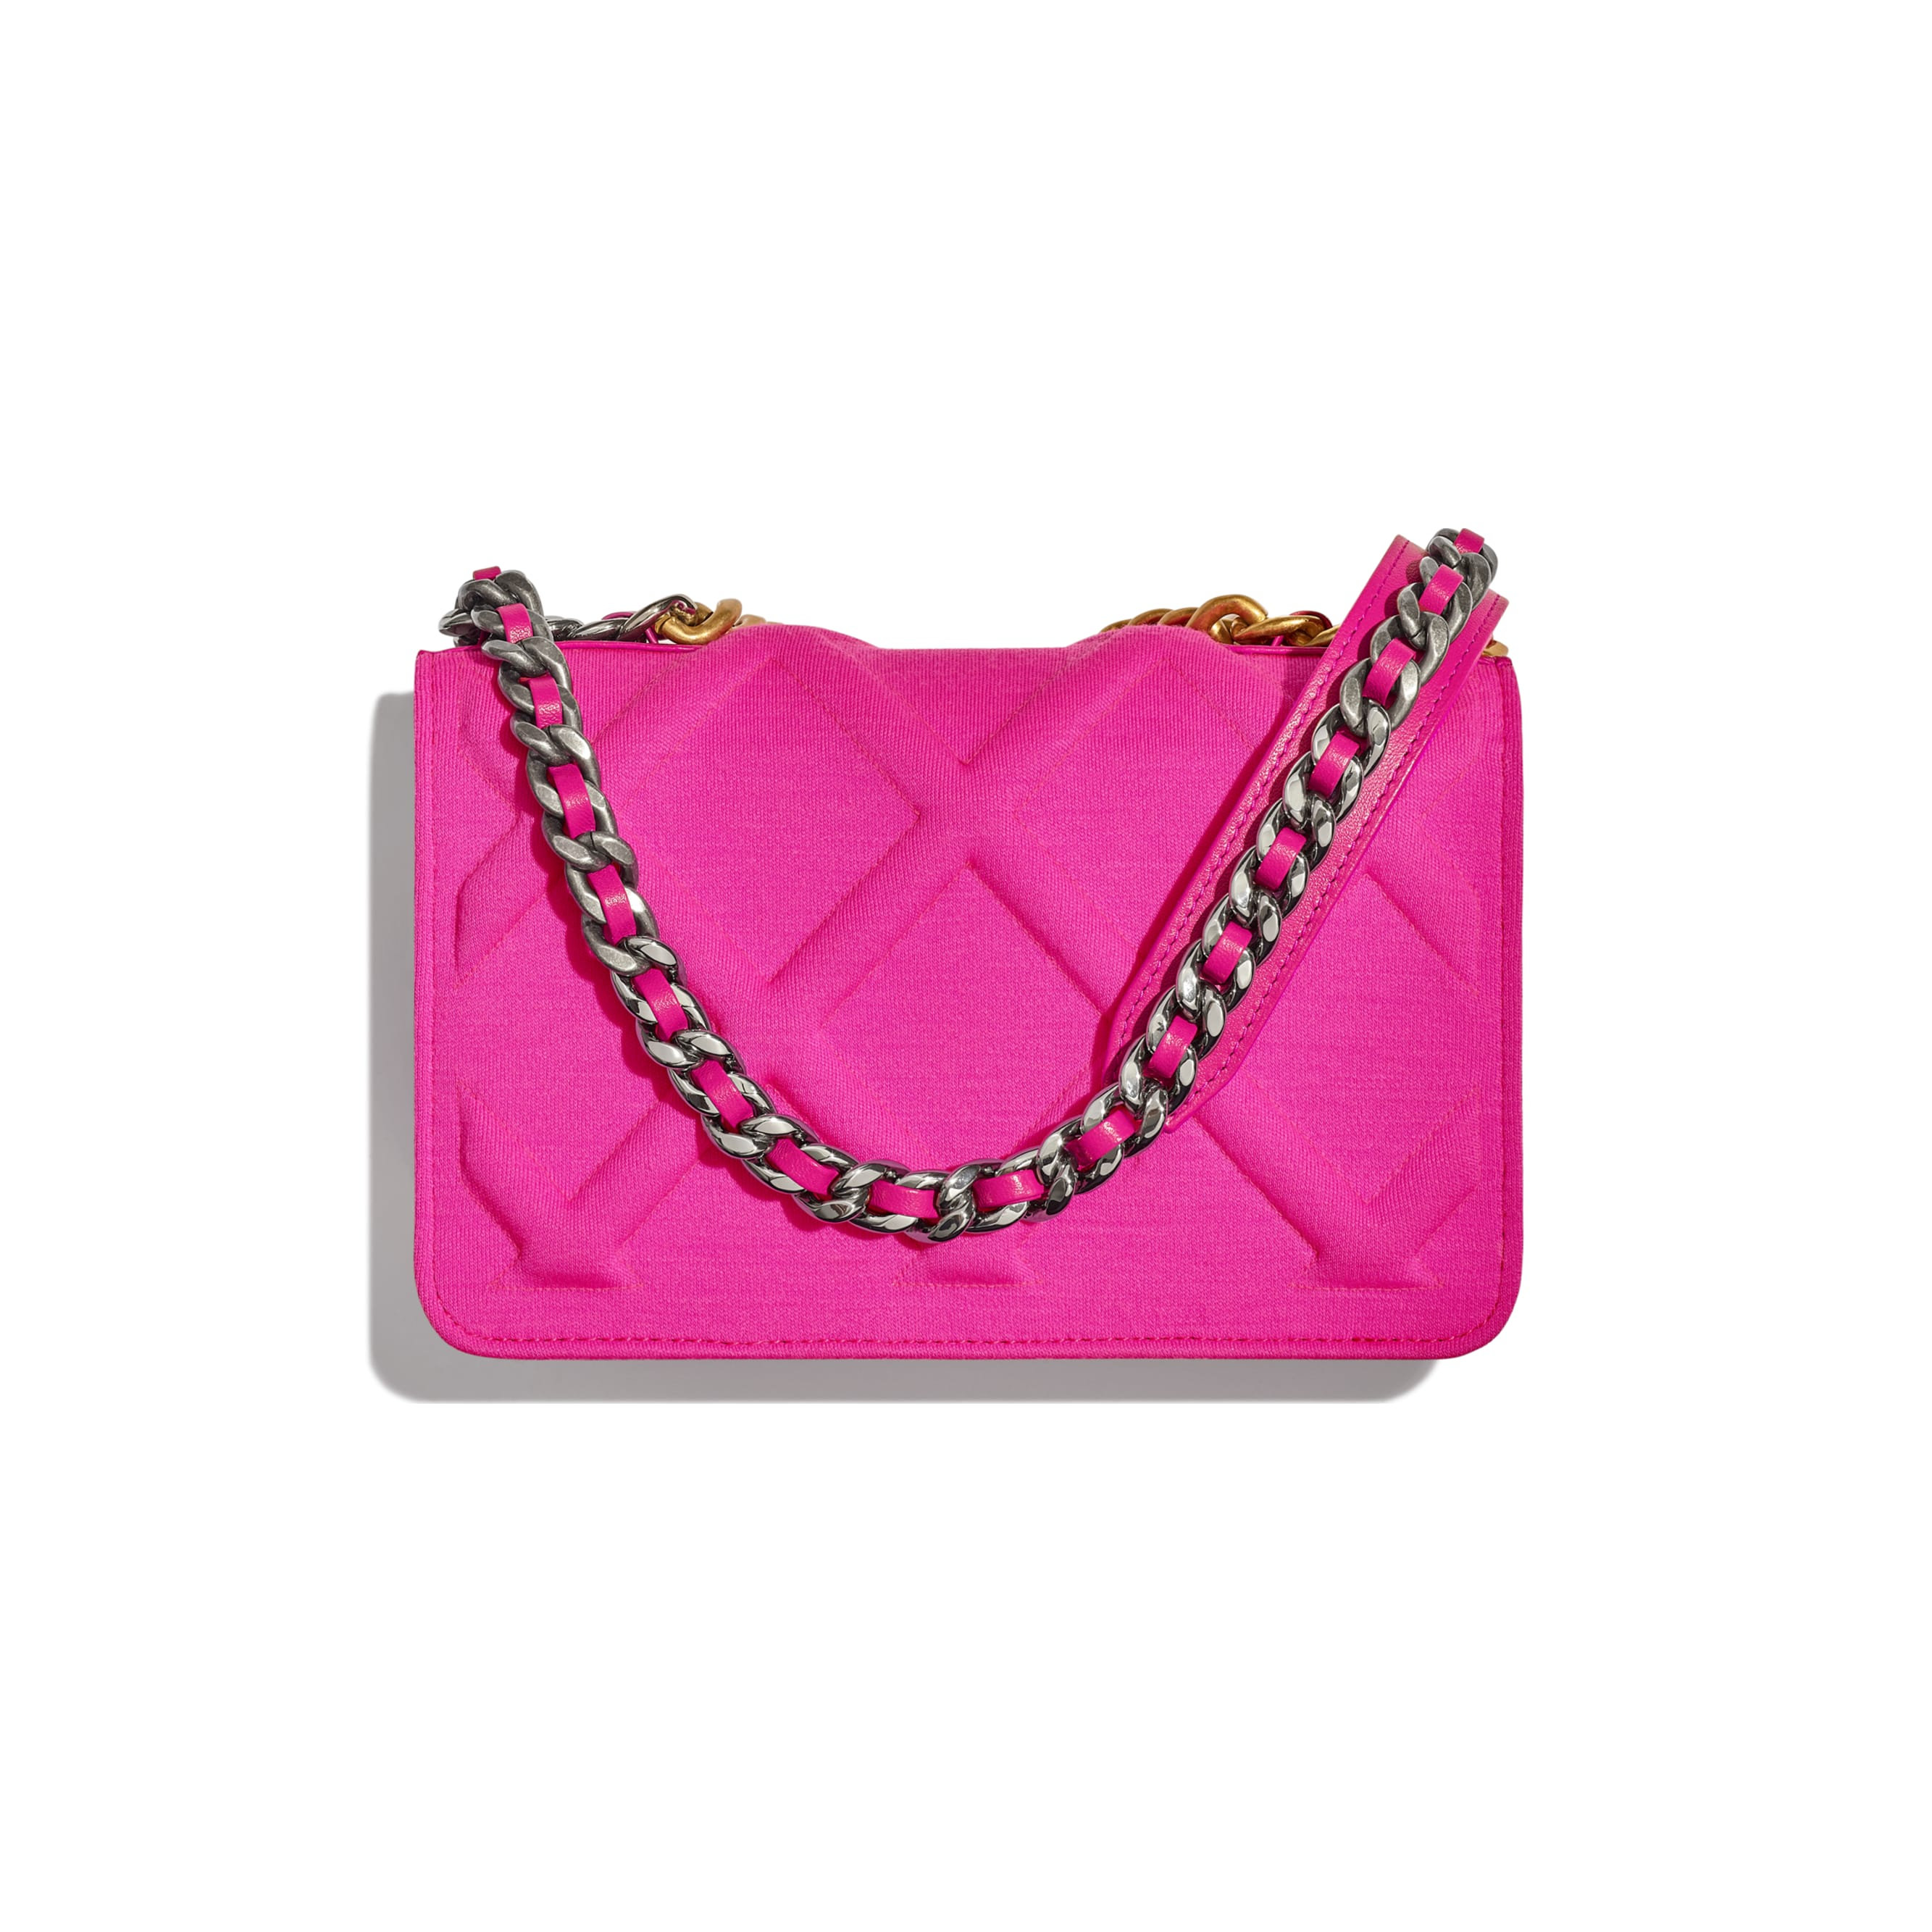 CHANEL 19 Wallet on Chain - Fuchsia - Jersey, Gold-Tone, Silver-Tone & Ruthenium-Finish Metal - Alternative view - see standard sized version